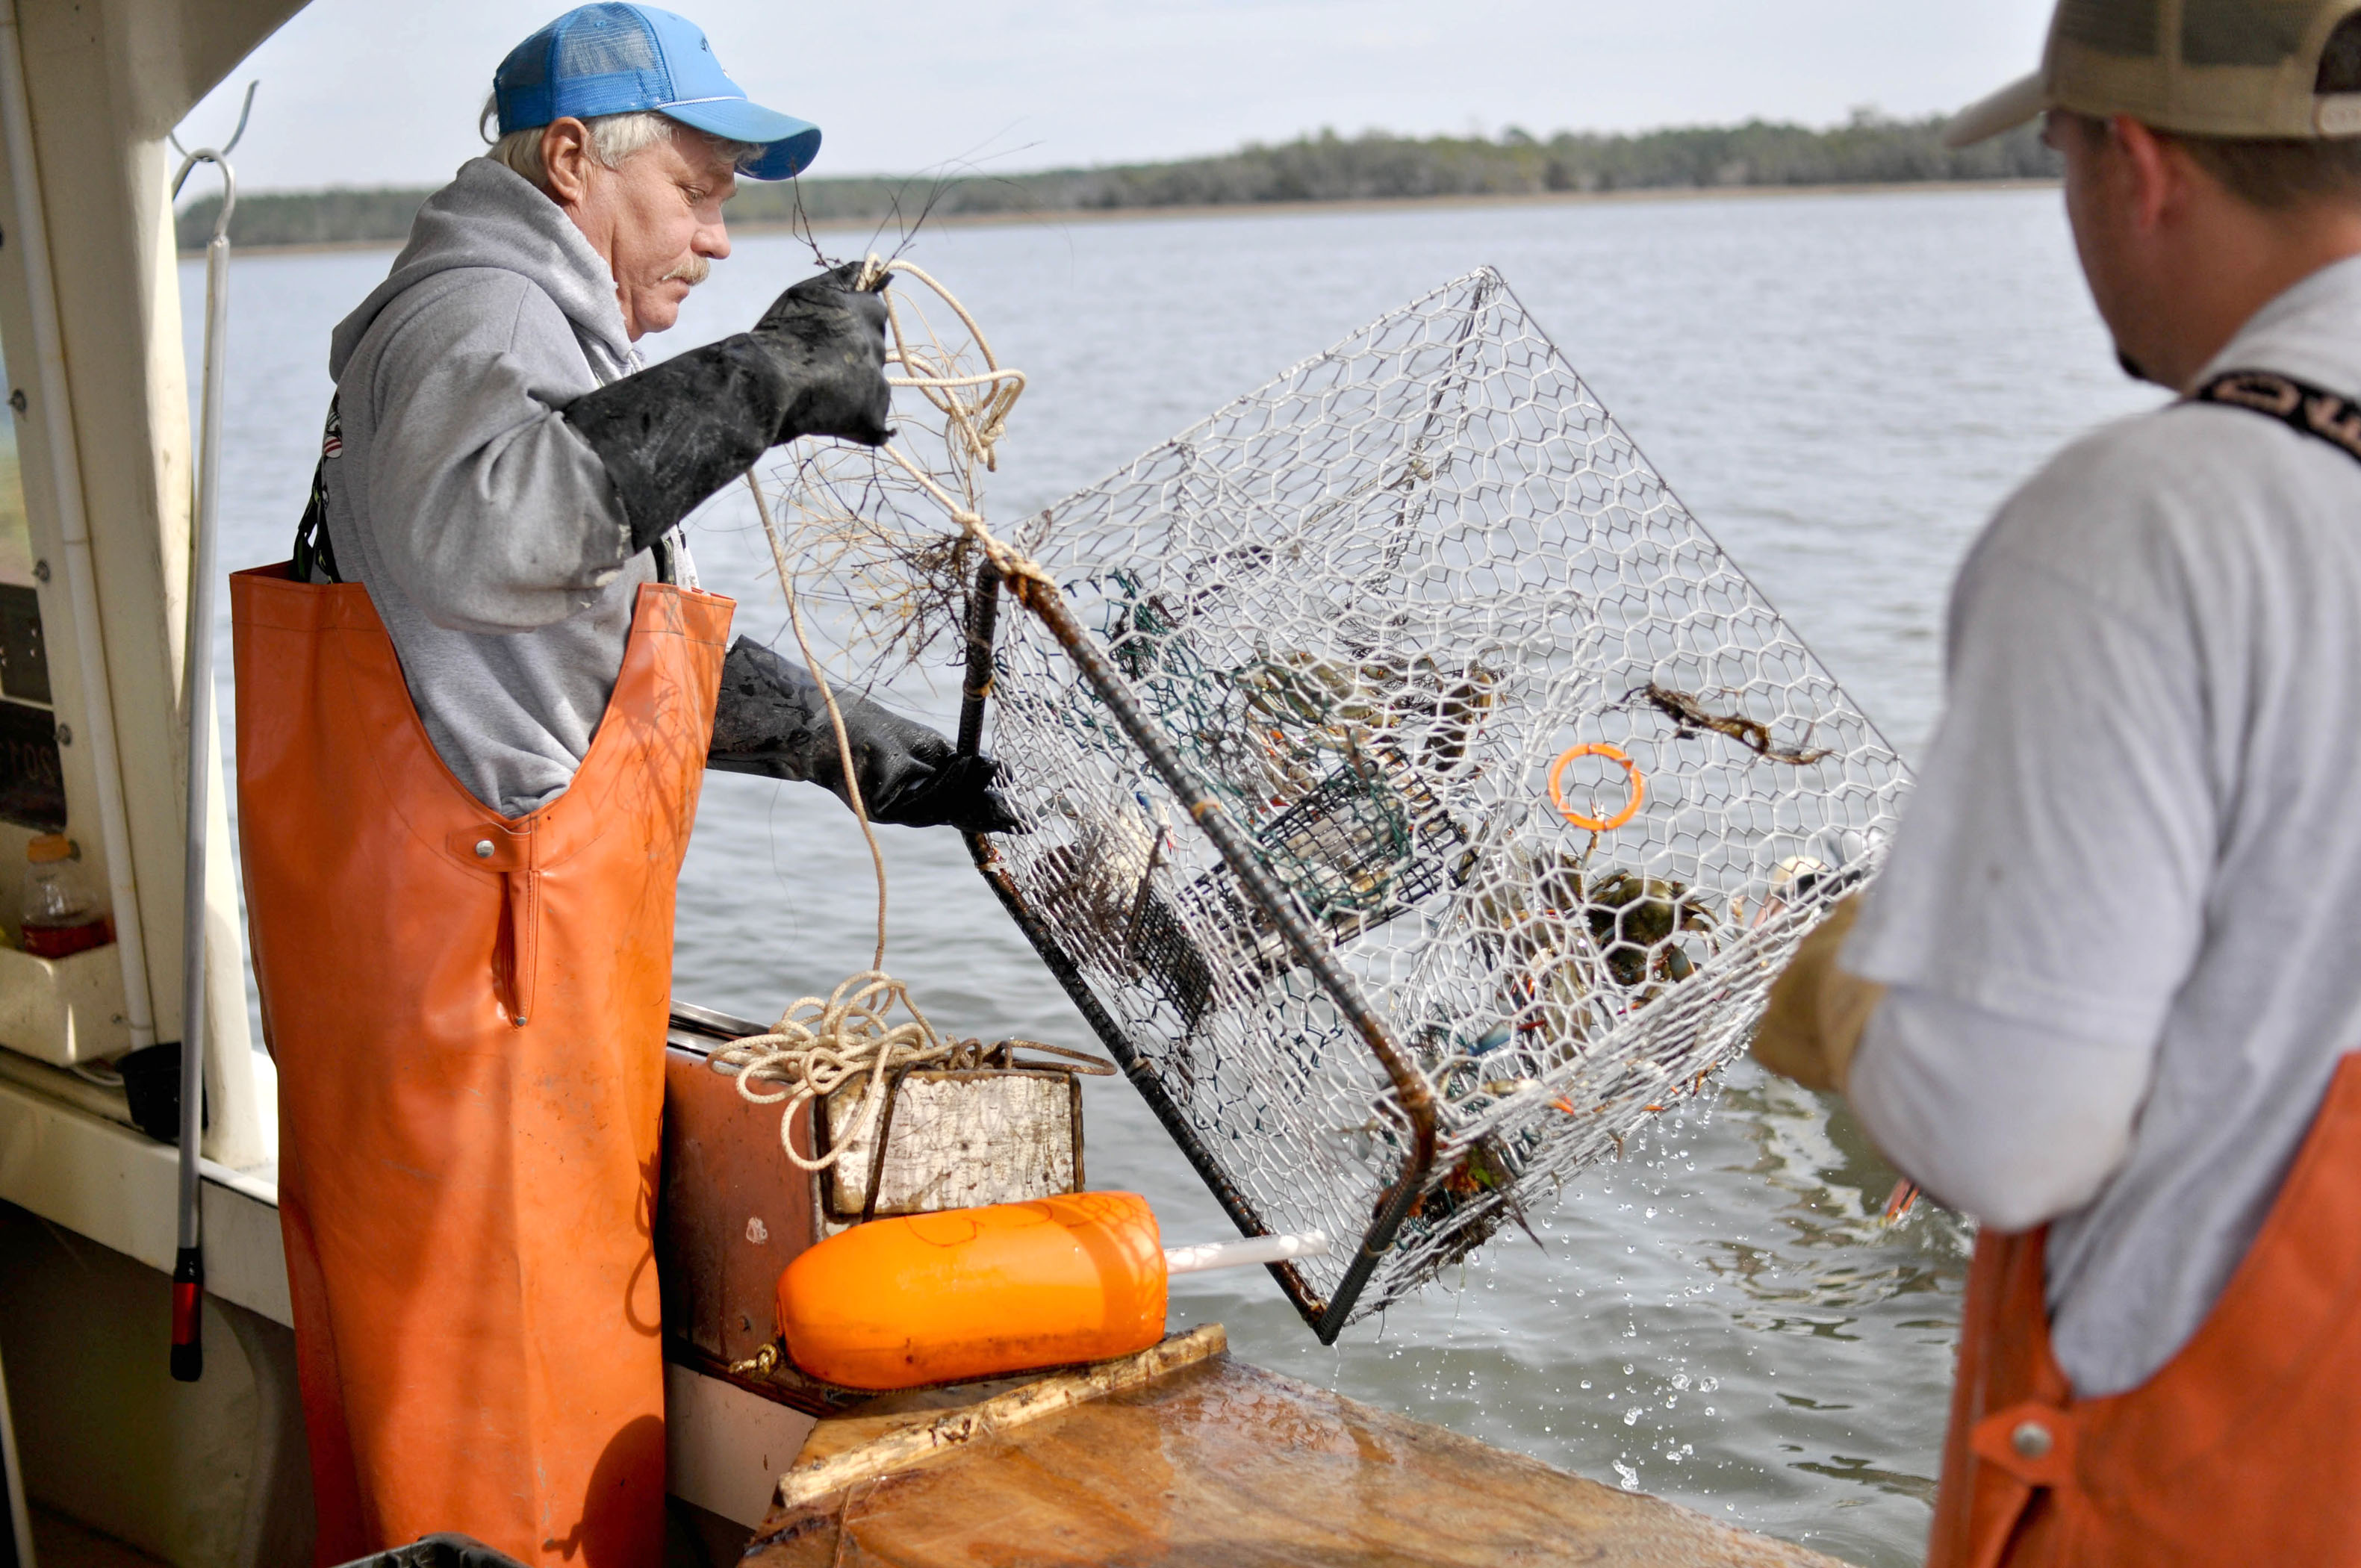 Pulling in Crabs from Ocean Image